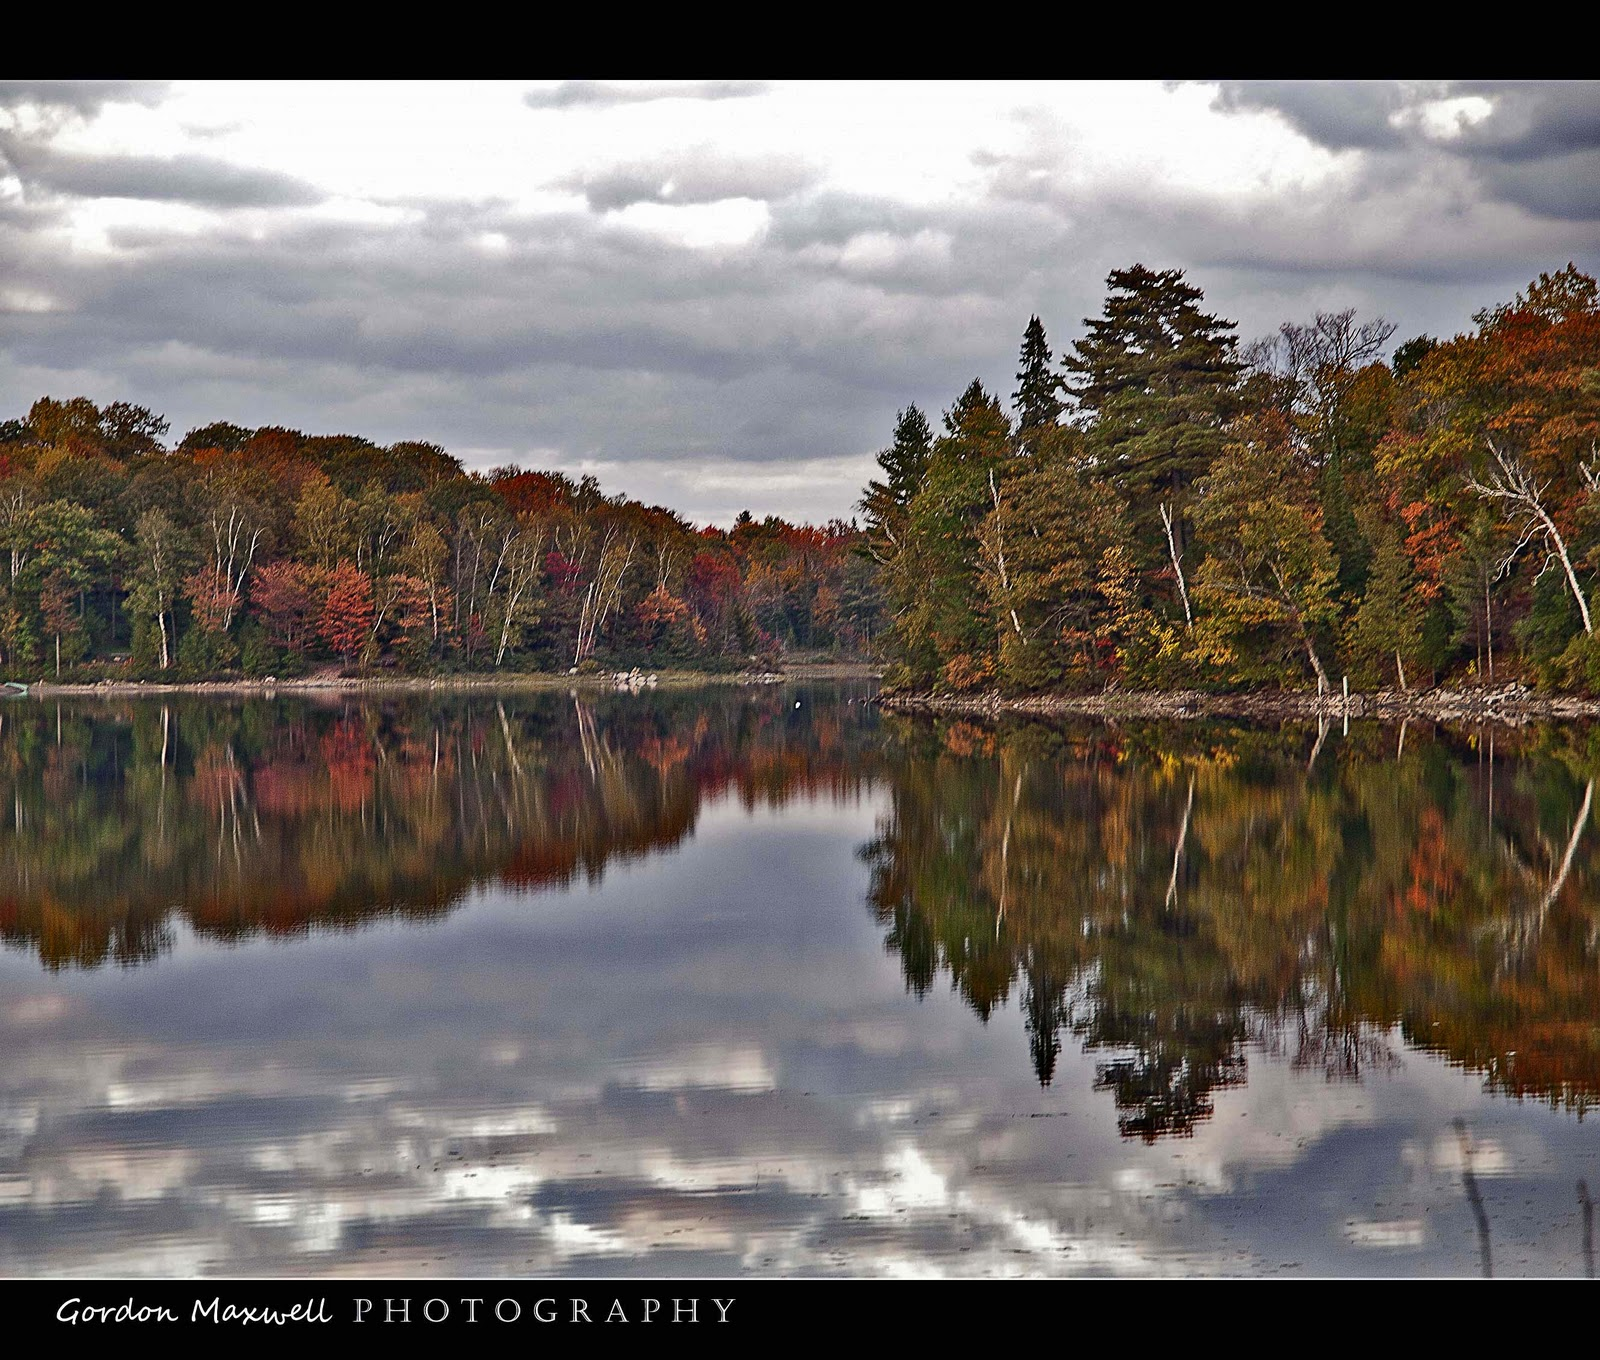 Gordon Maxwell Photography: Southern Ontario Landscapes